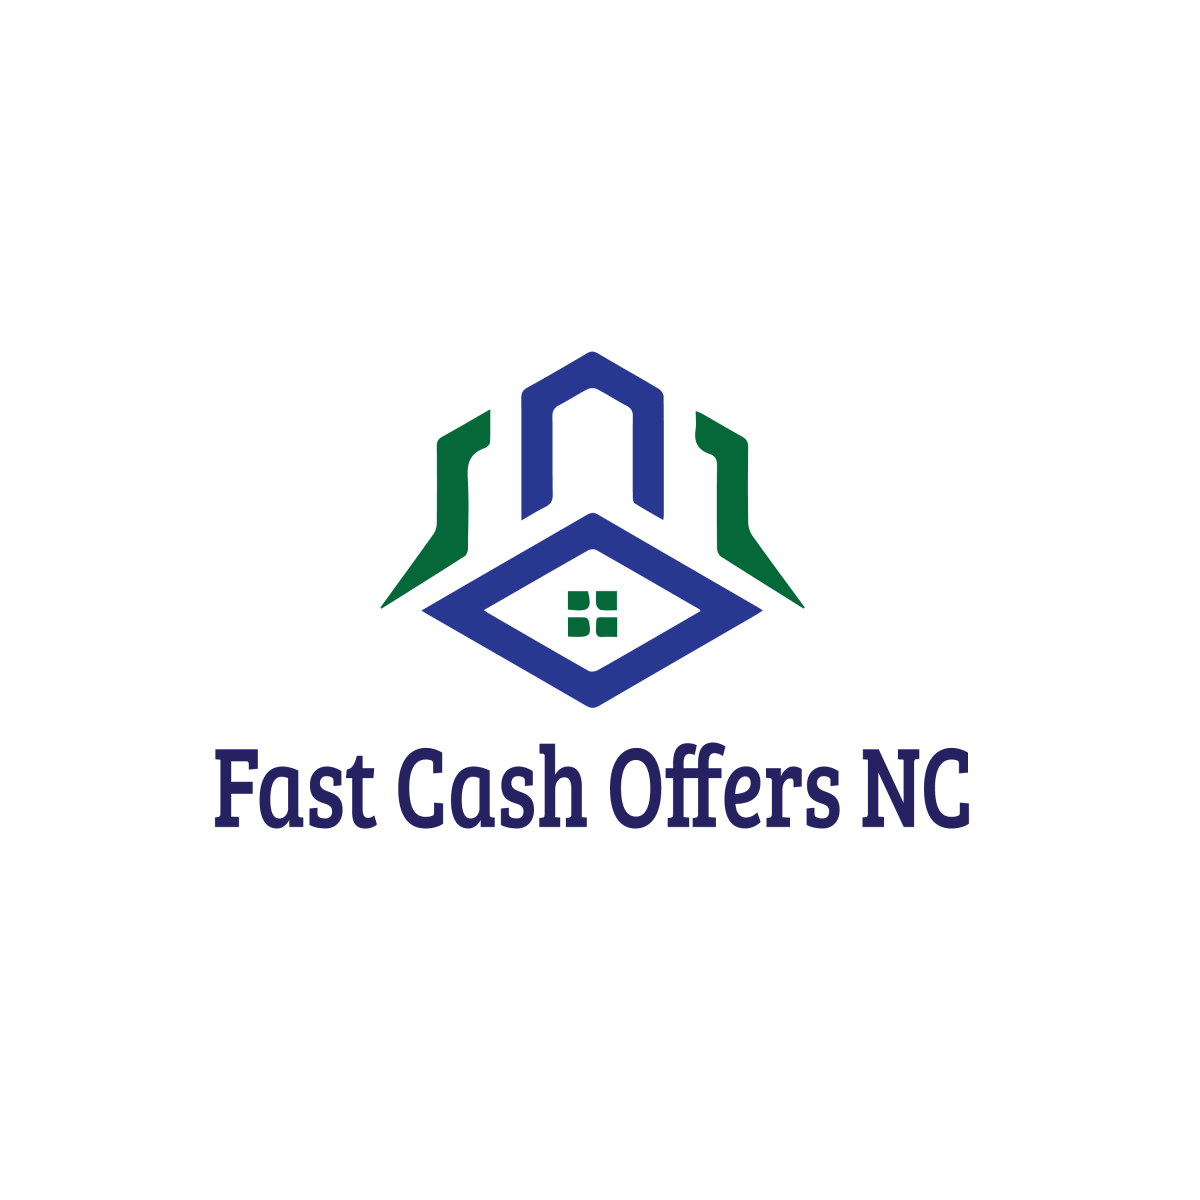 Fast Cash Offers NC logo